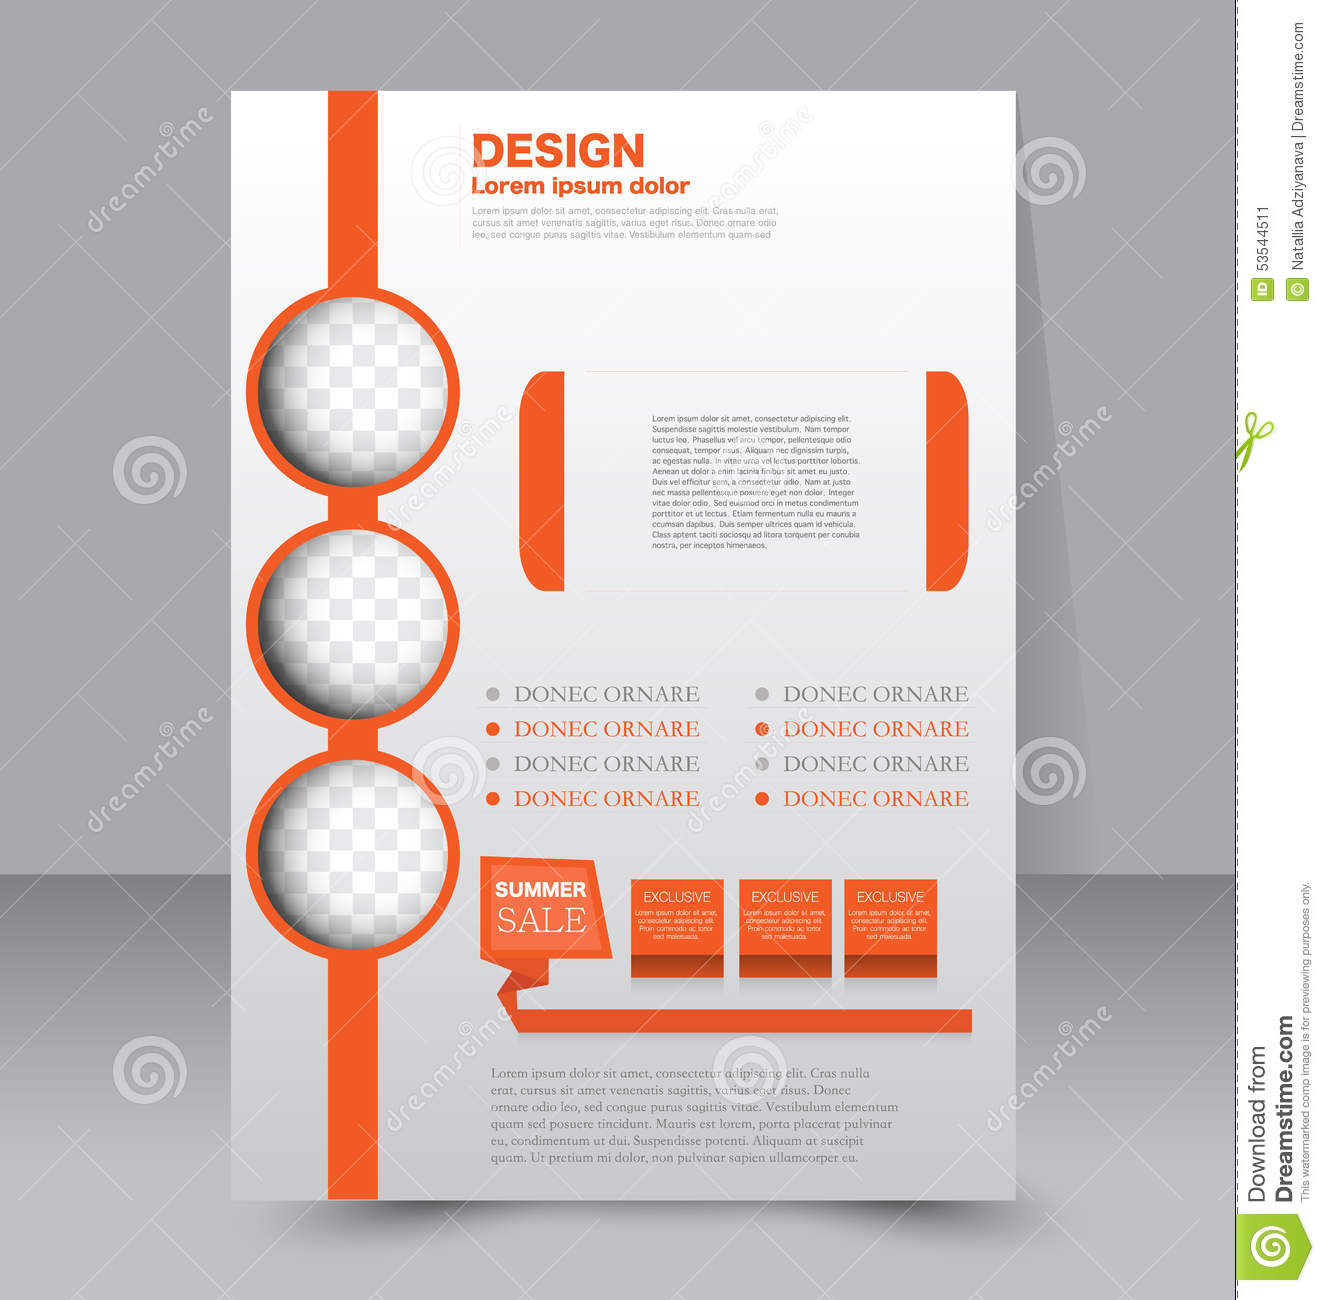 Posters Design Templates | www.imgkid.com - The Image Kid ...